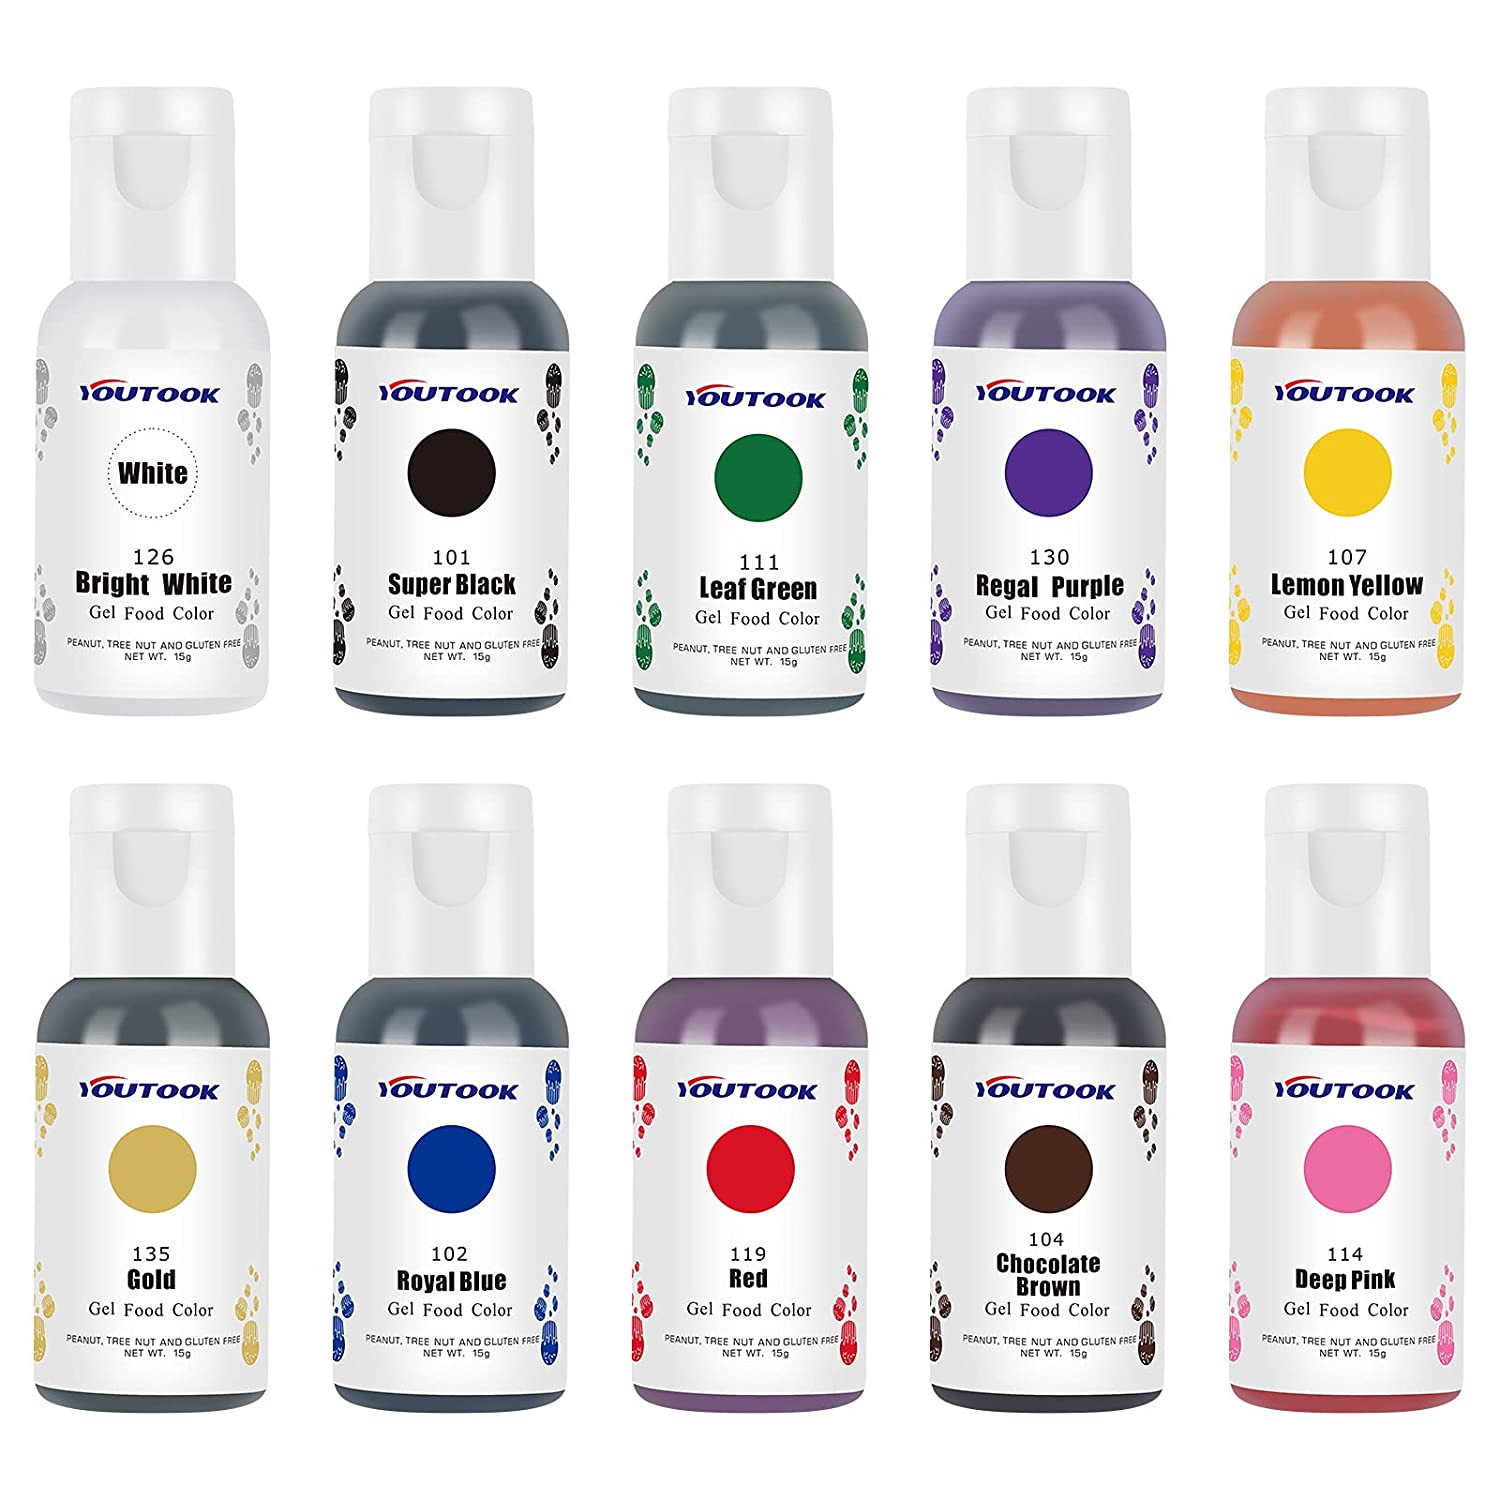 Gel Food Coloring 10 x 15ML, Tasteless Gel Food Coloring for Cake Decorating Baking Fondant Cookie Frosting, Vibrant Icing Gel Colors Set, Very Suitable for Home & Bakery Baking Use (15g/Bottles)